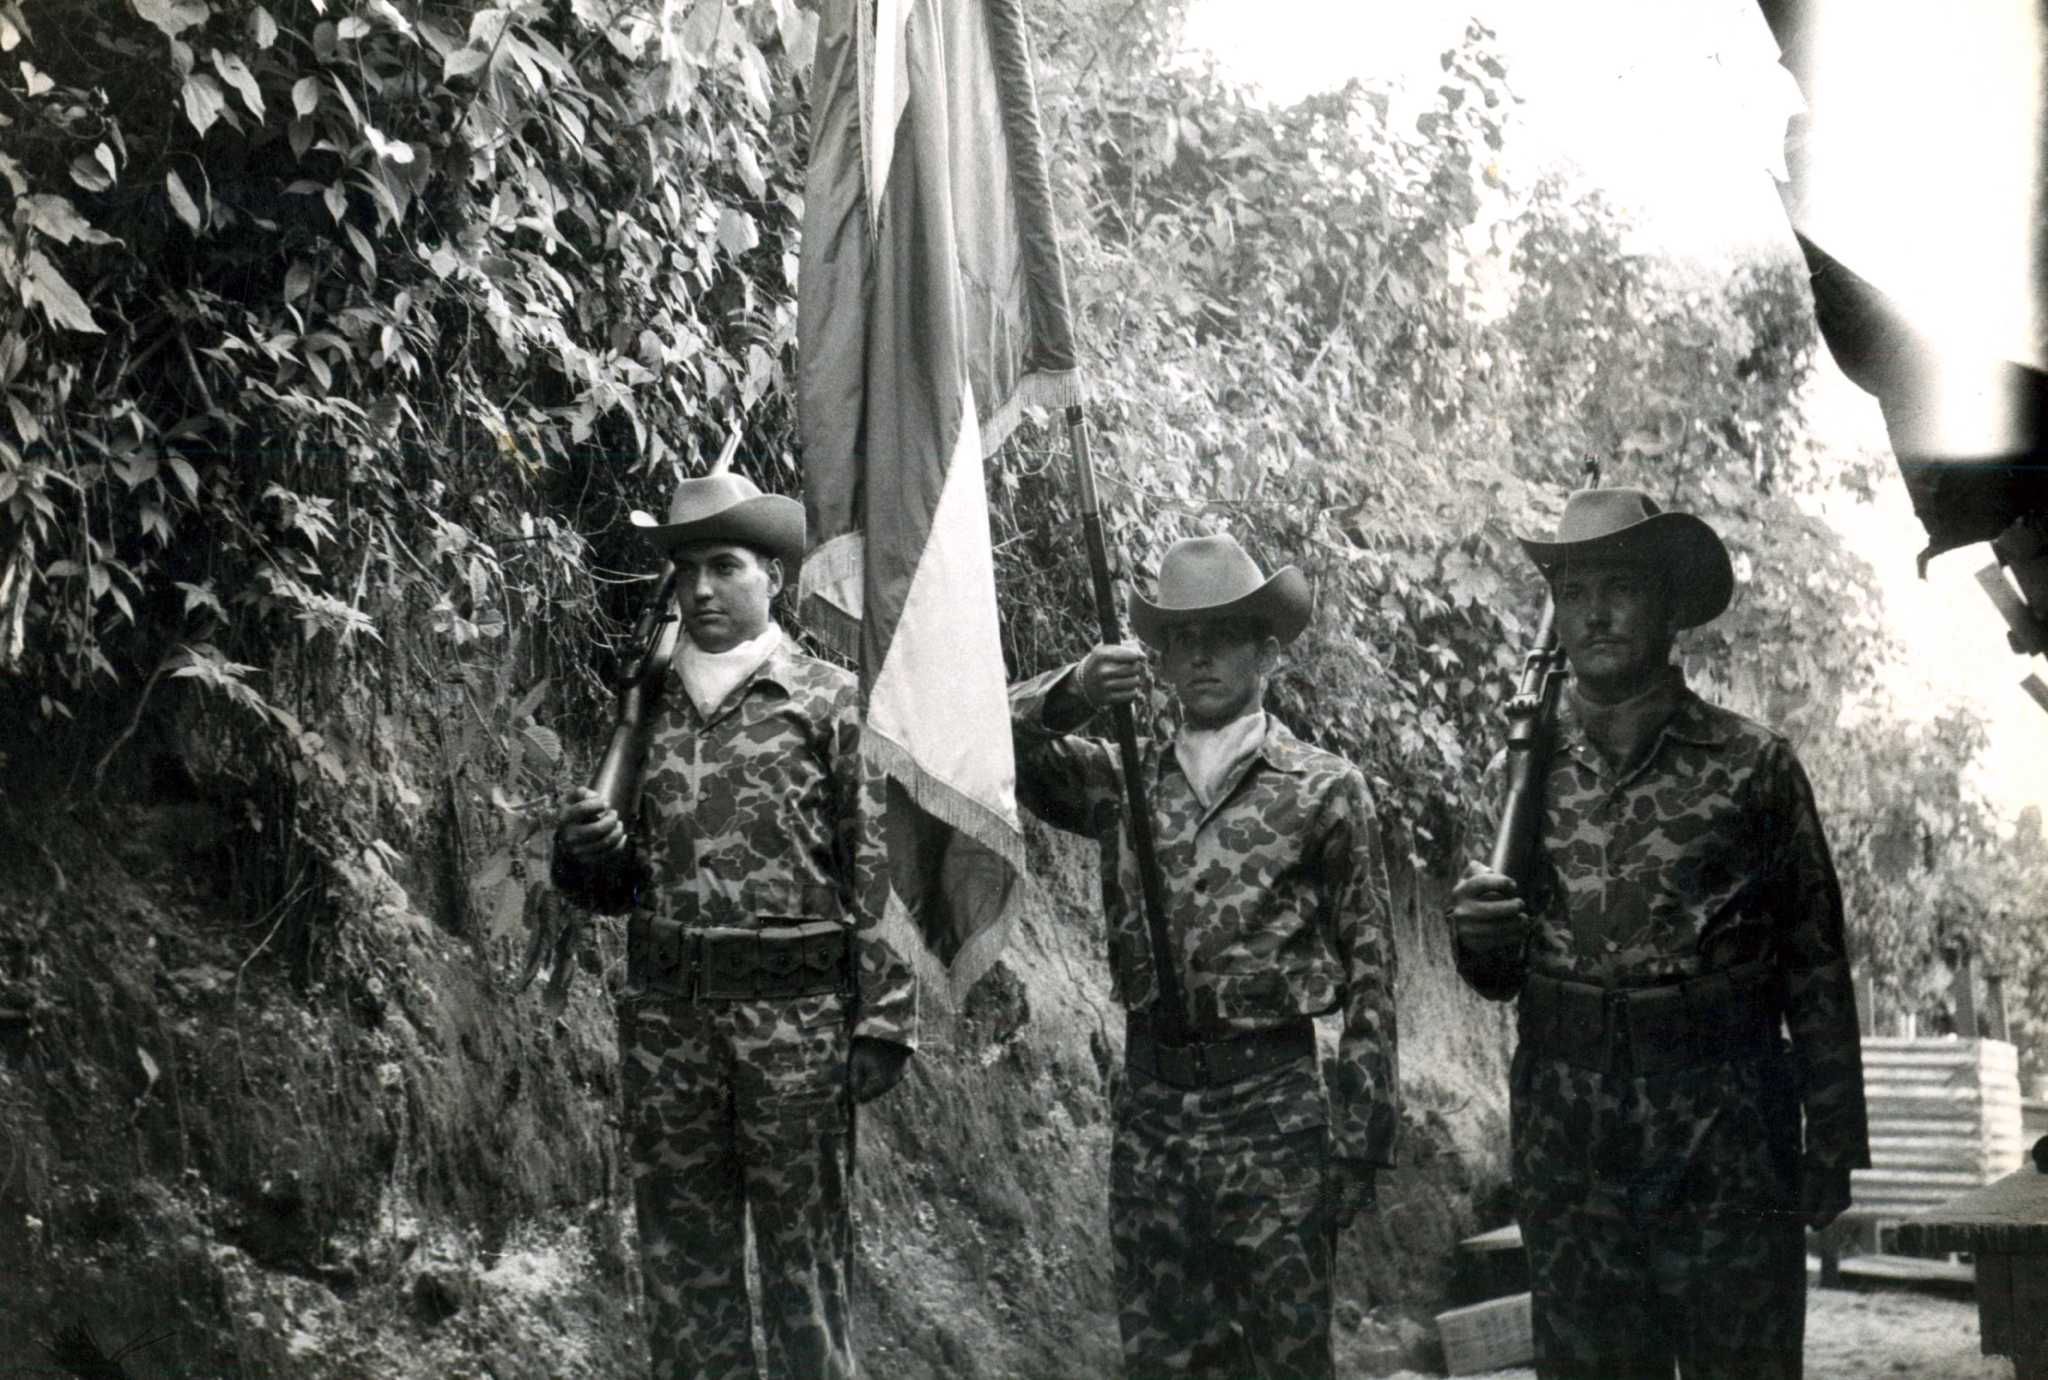 Usaa Contact Us >> Bay of Pigs invaders recall 'sure' victory - San Antonio Express-News